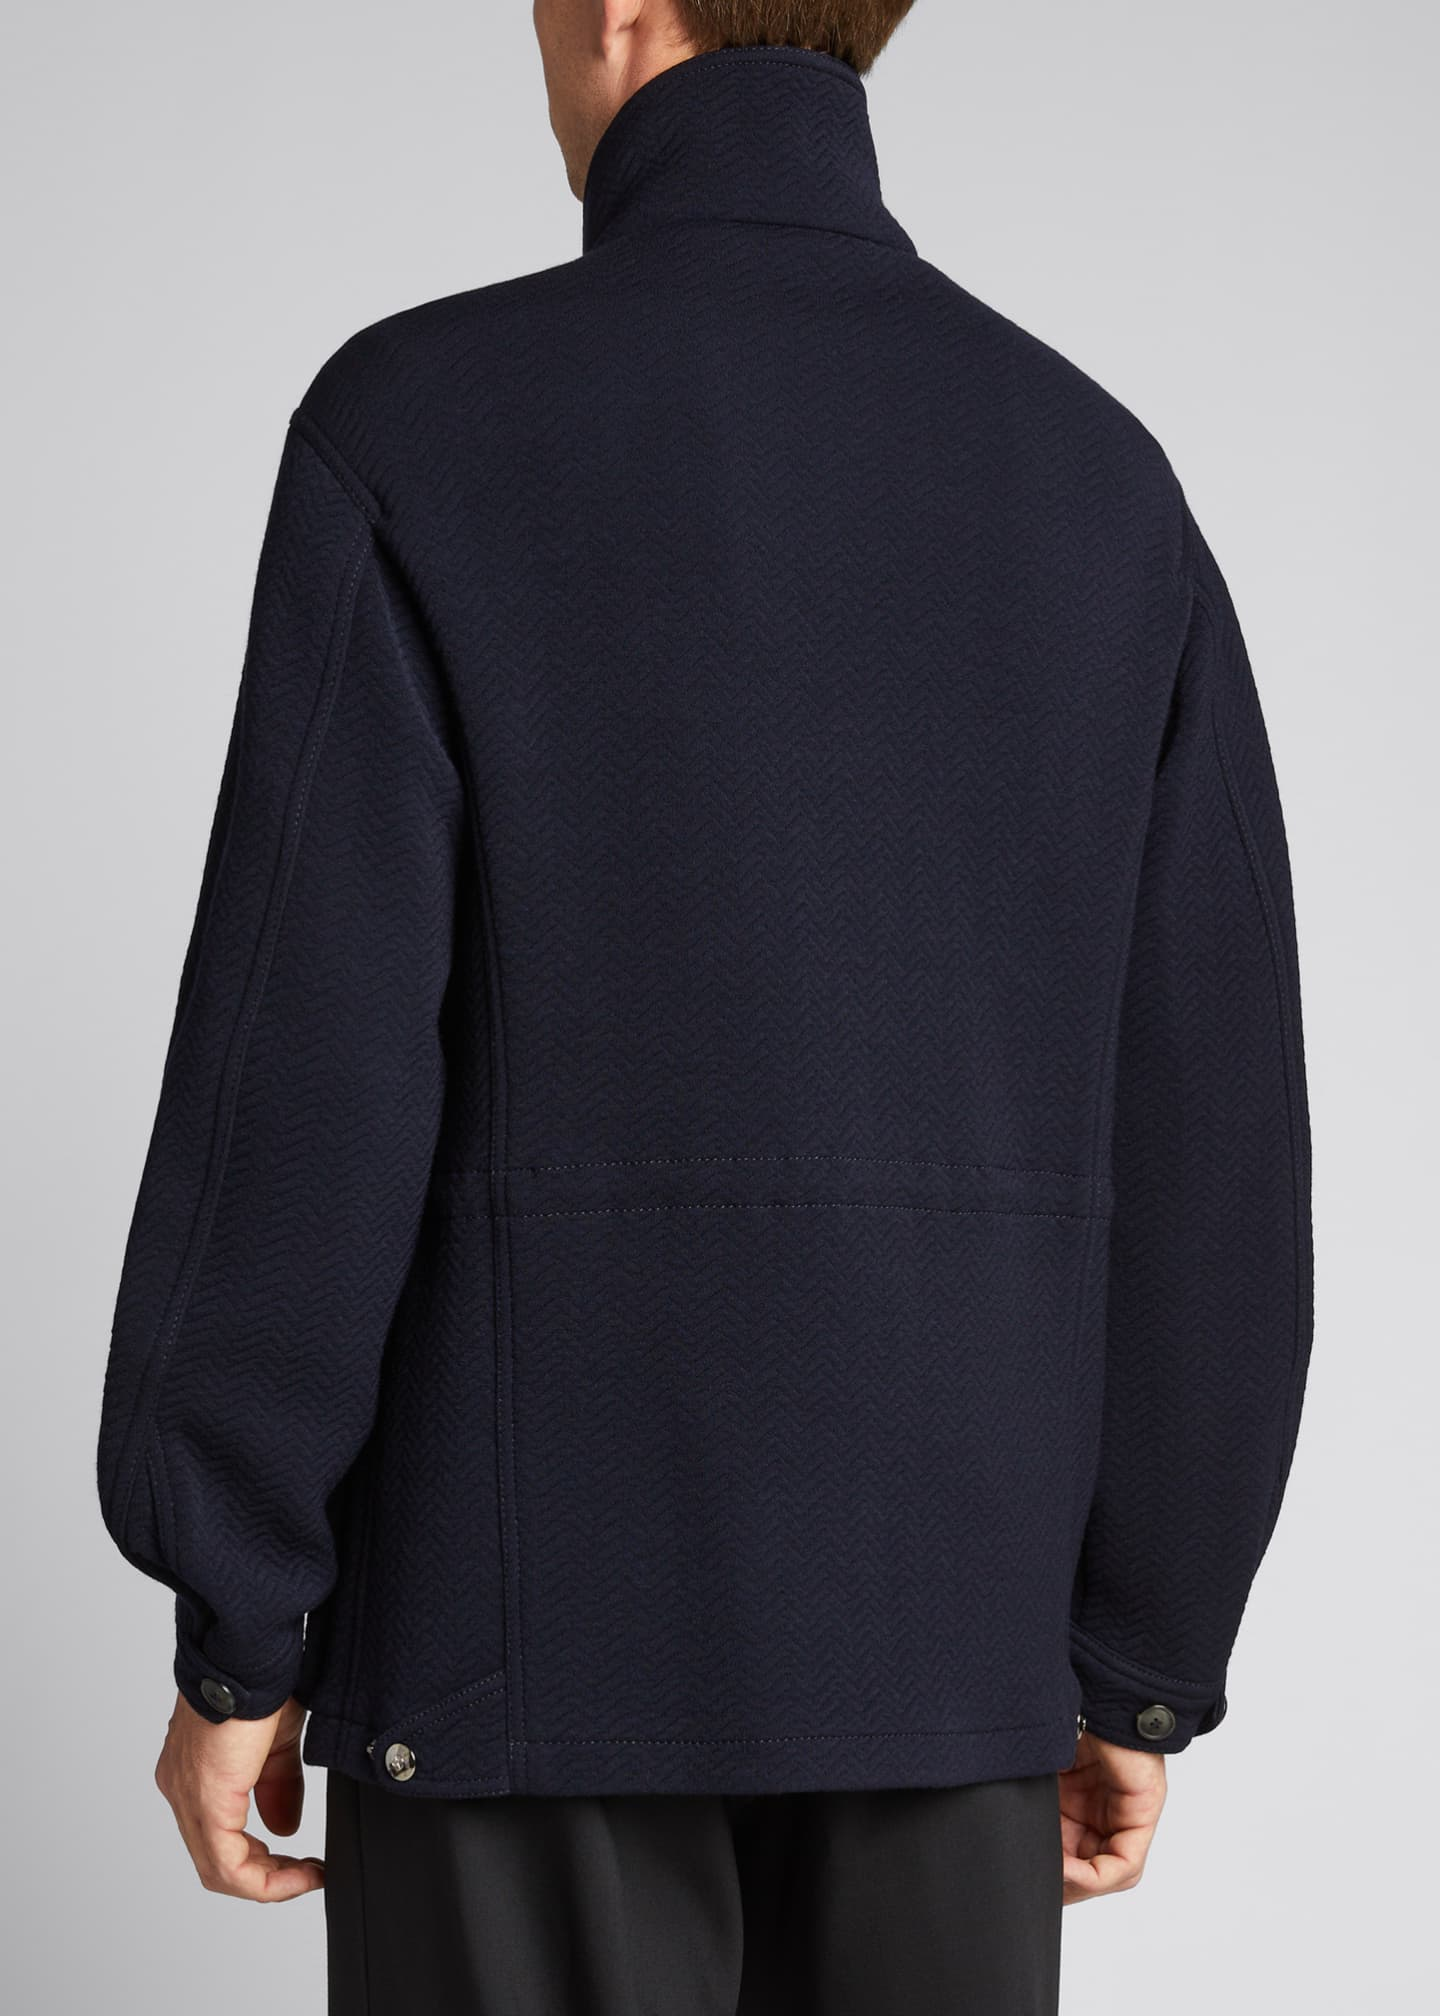 Image 2 of 5: Men's Herringbone Wool-Blend Field Jacket